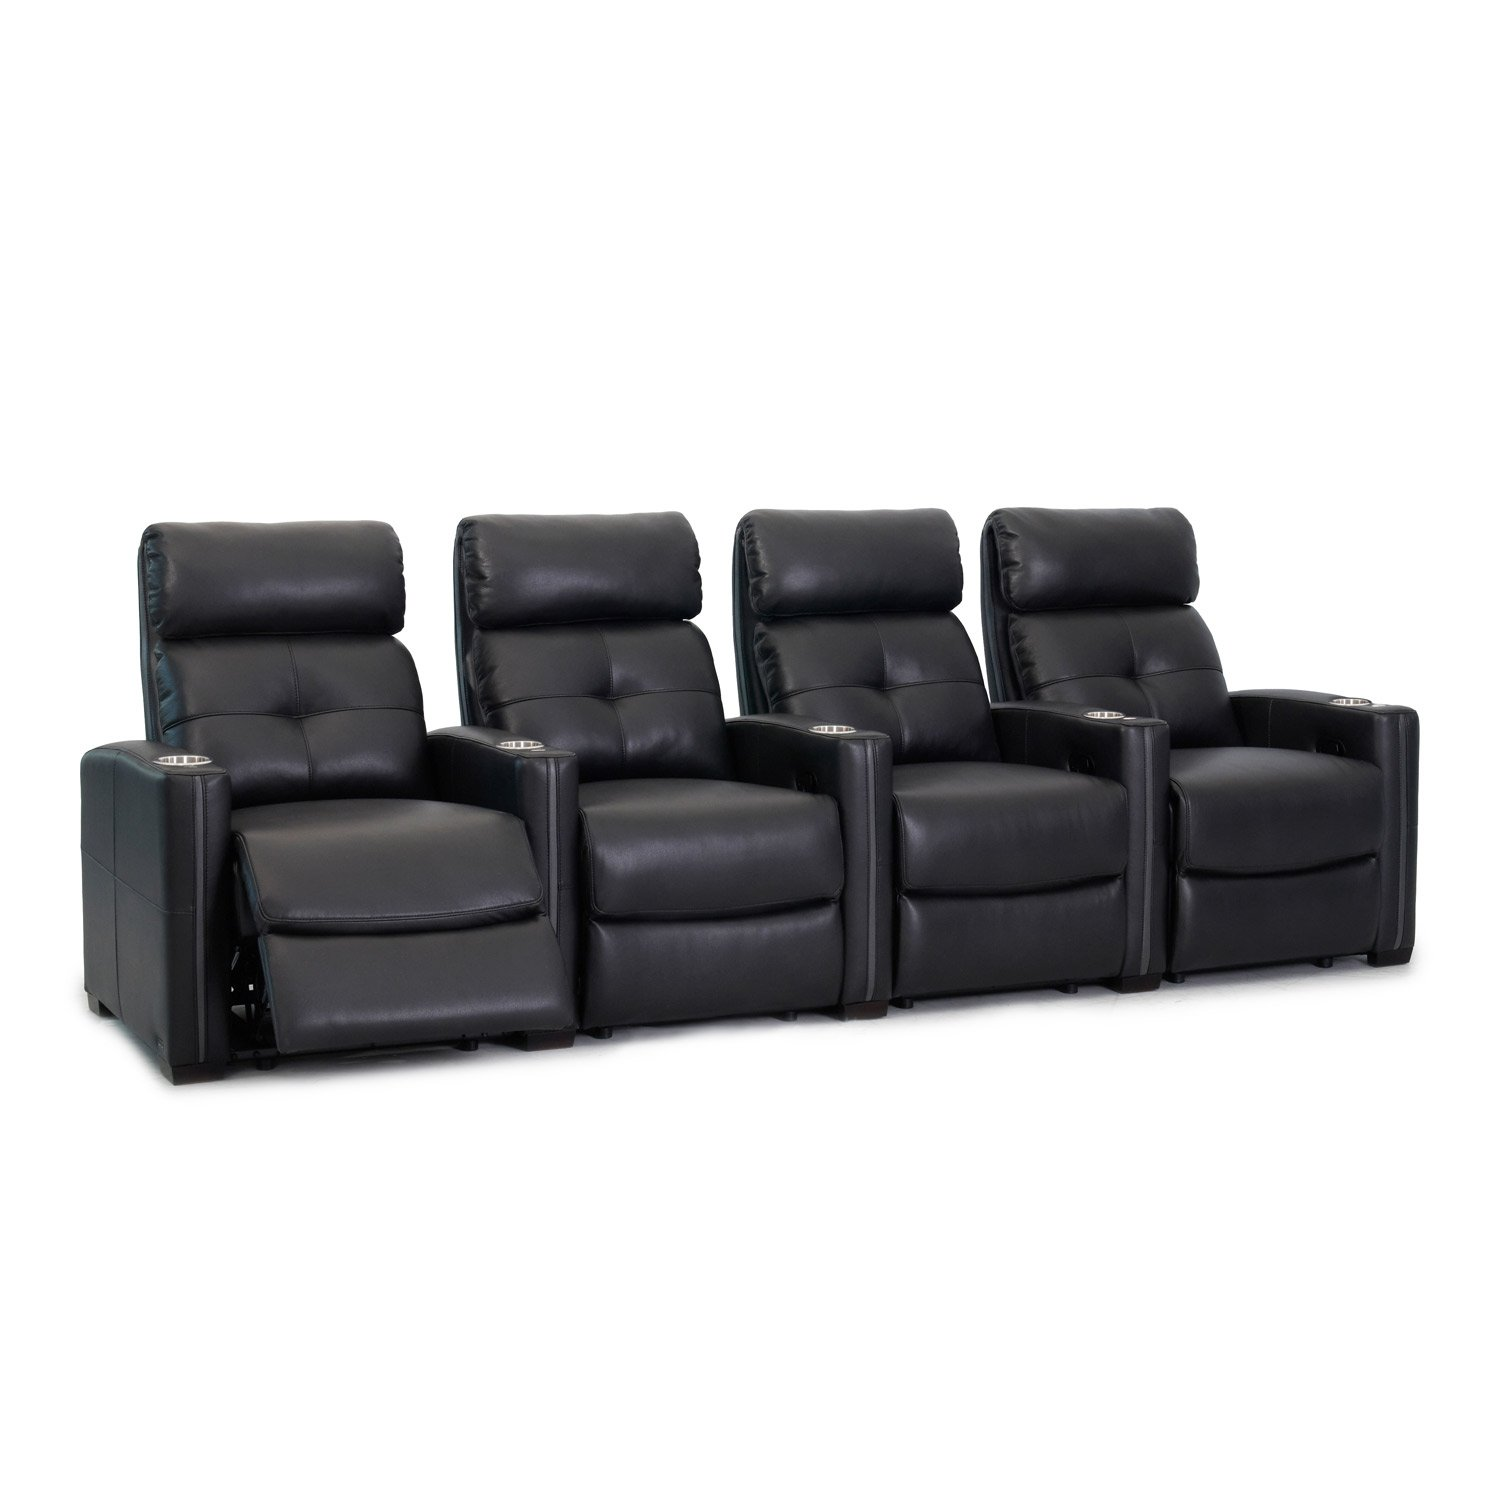 Octane Seating Cloud XS850 Home Theater Chairs - Black Top Grain Leather - Manual Recline - Row 4 Seats - Space Saving Design by Octane Seating